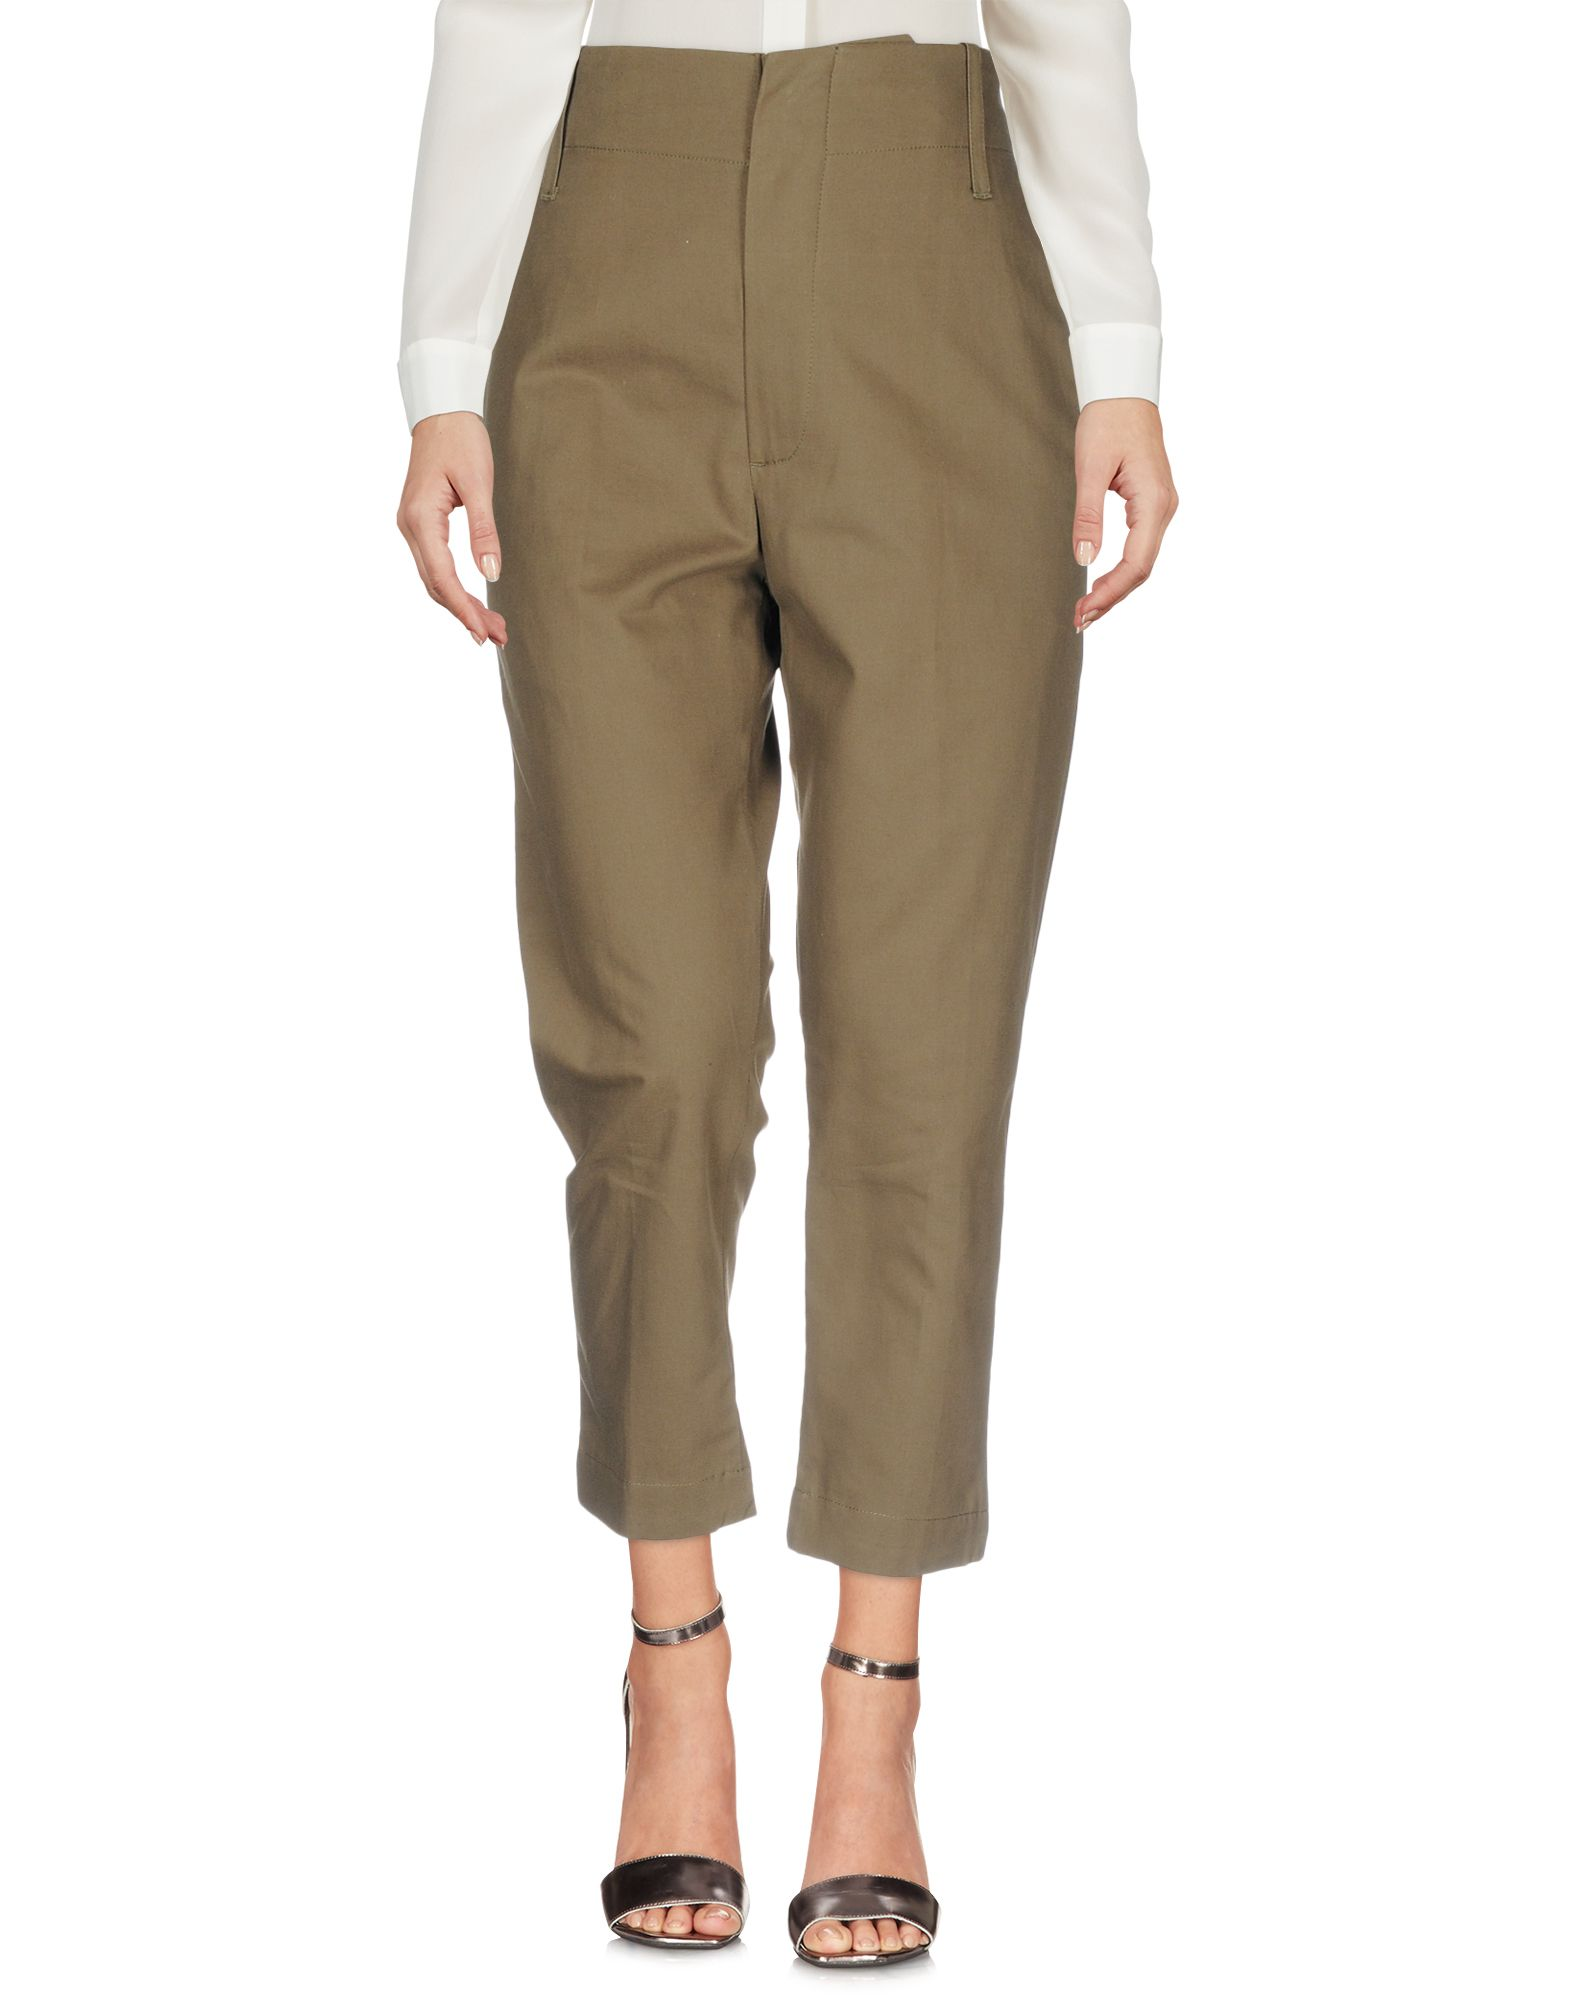 LAURENCE BRAS Casual Pants in Military Green